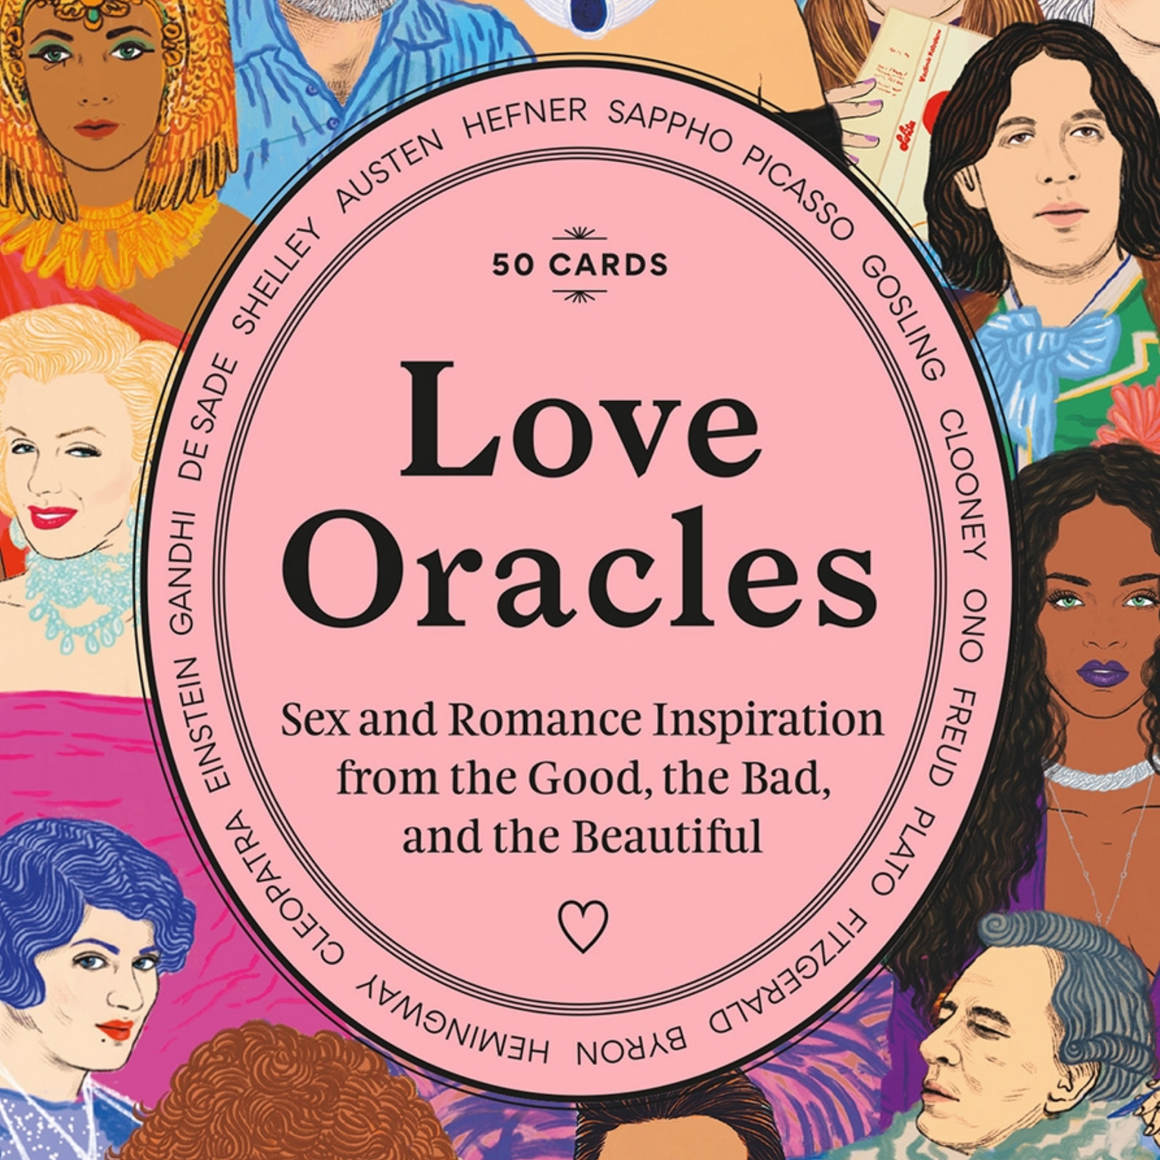 LOVE ORACLES - SEX & ROMANCE INSPIRATION FROM THE GOOD, THE BAD & THE BEAUTIFUL